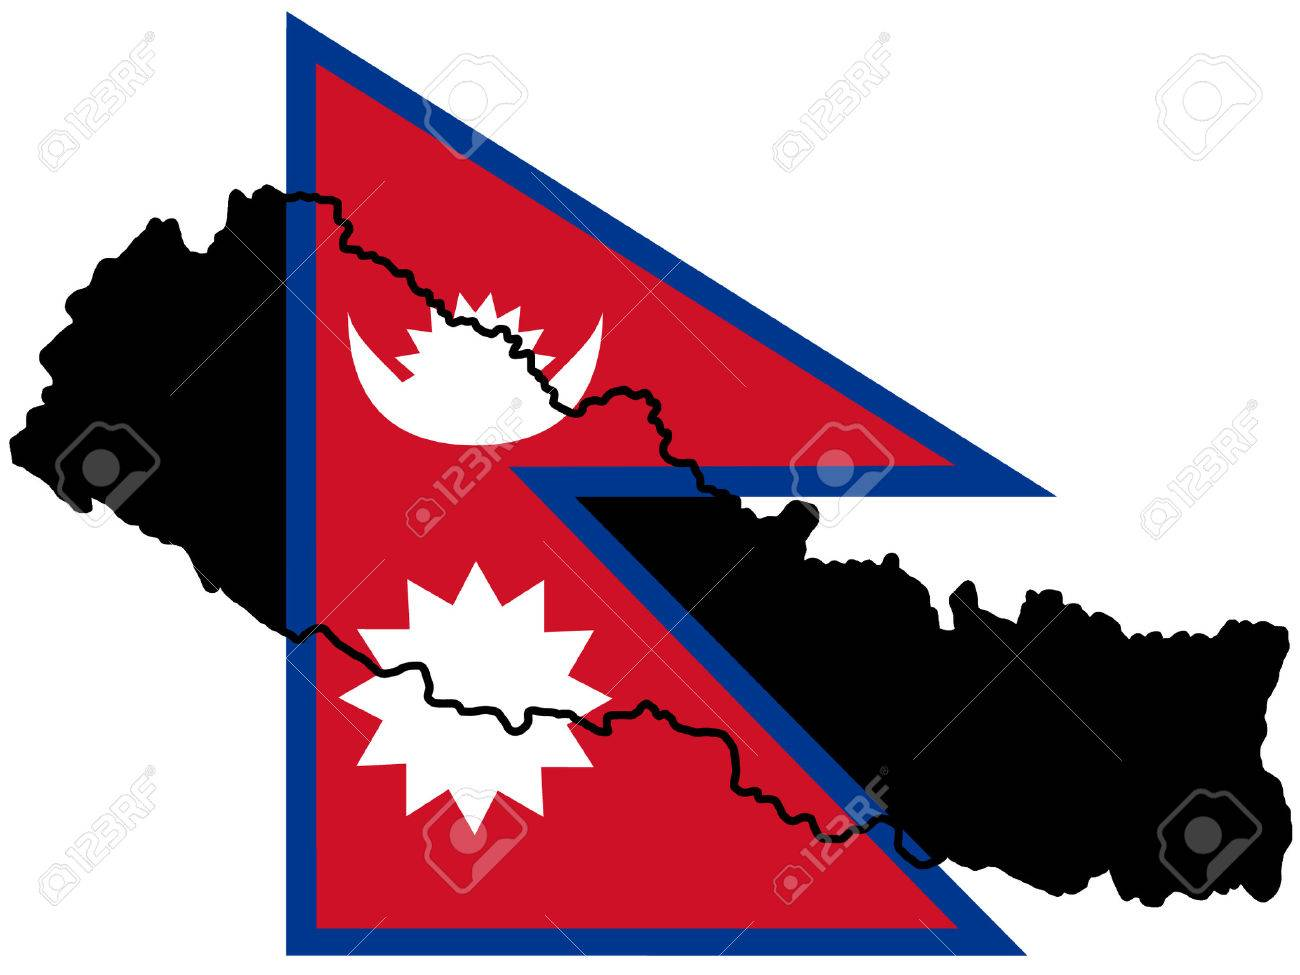 map of Nepal and Nepalese flag illustration